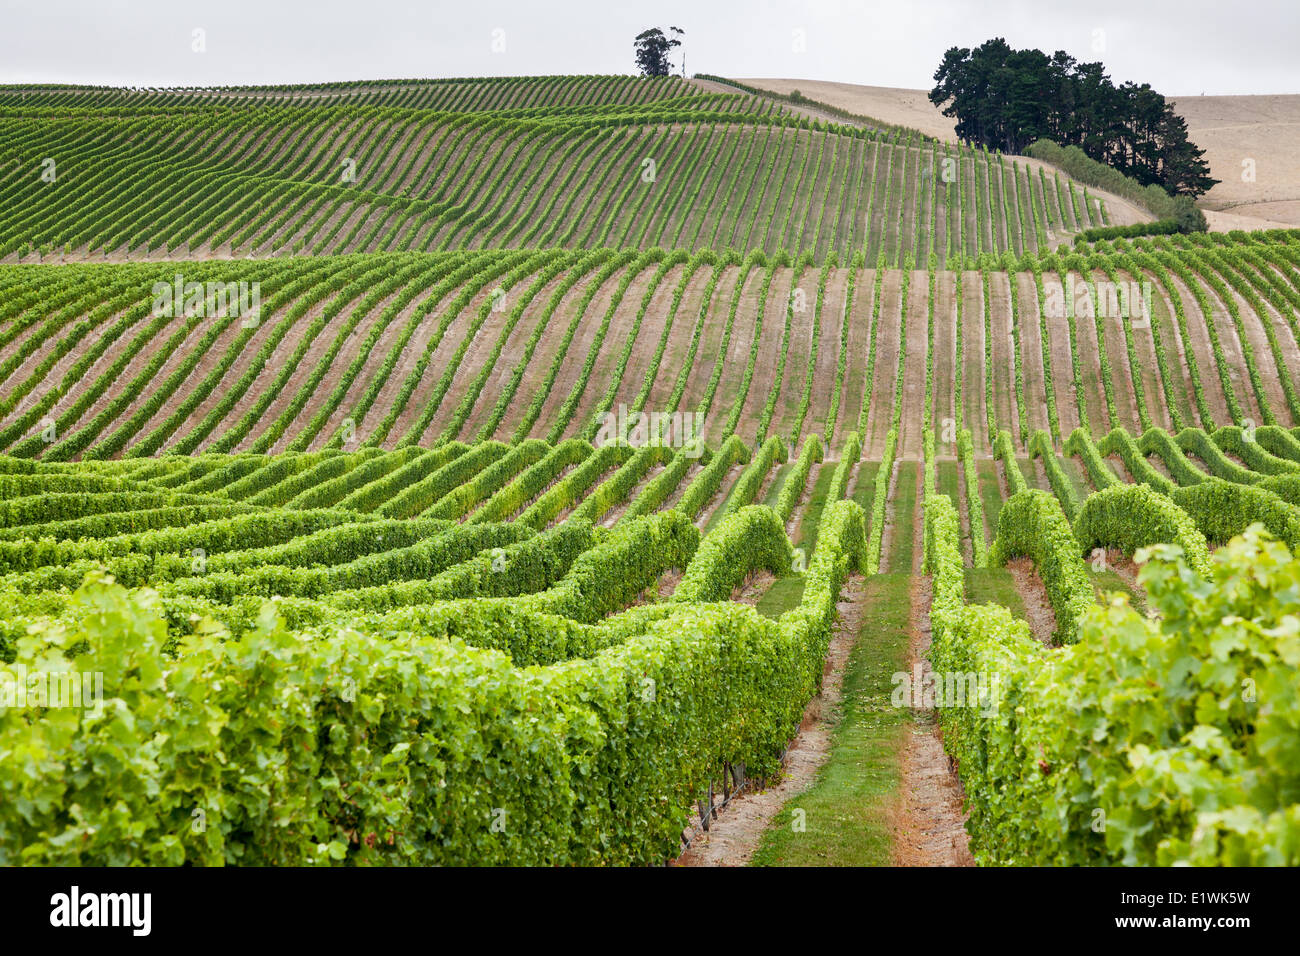 Weinberge in Marlborough Region auf der Nordinsel Neuseelands Stockfoto